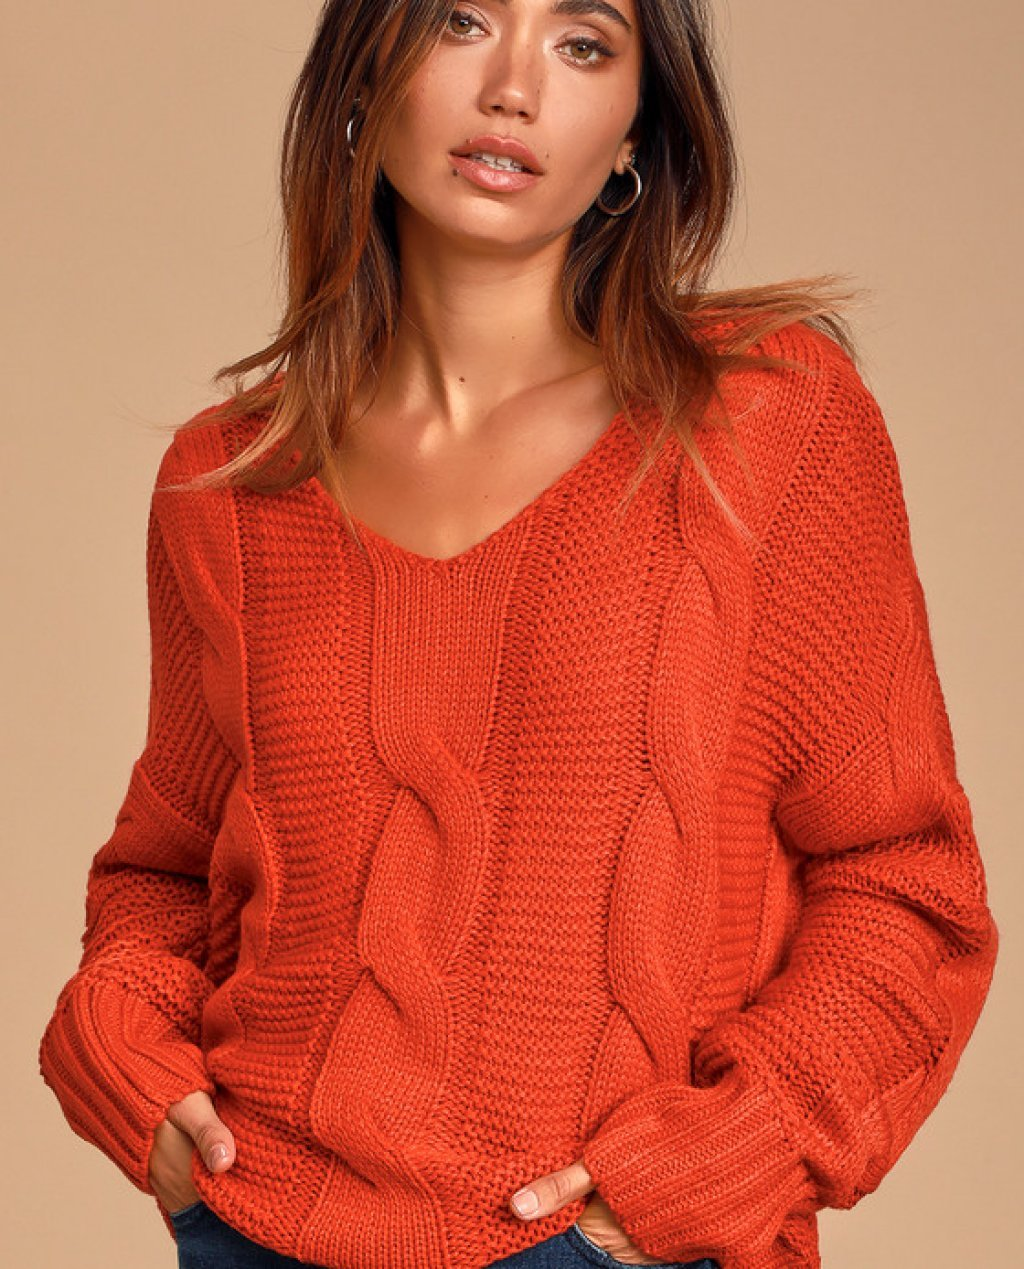 New Possibilities Red Orange Cable Knit Sweater